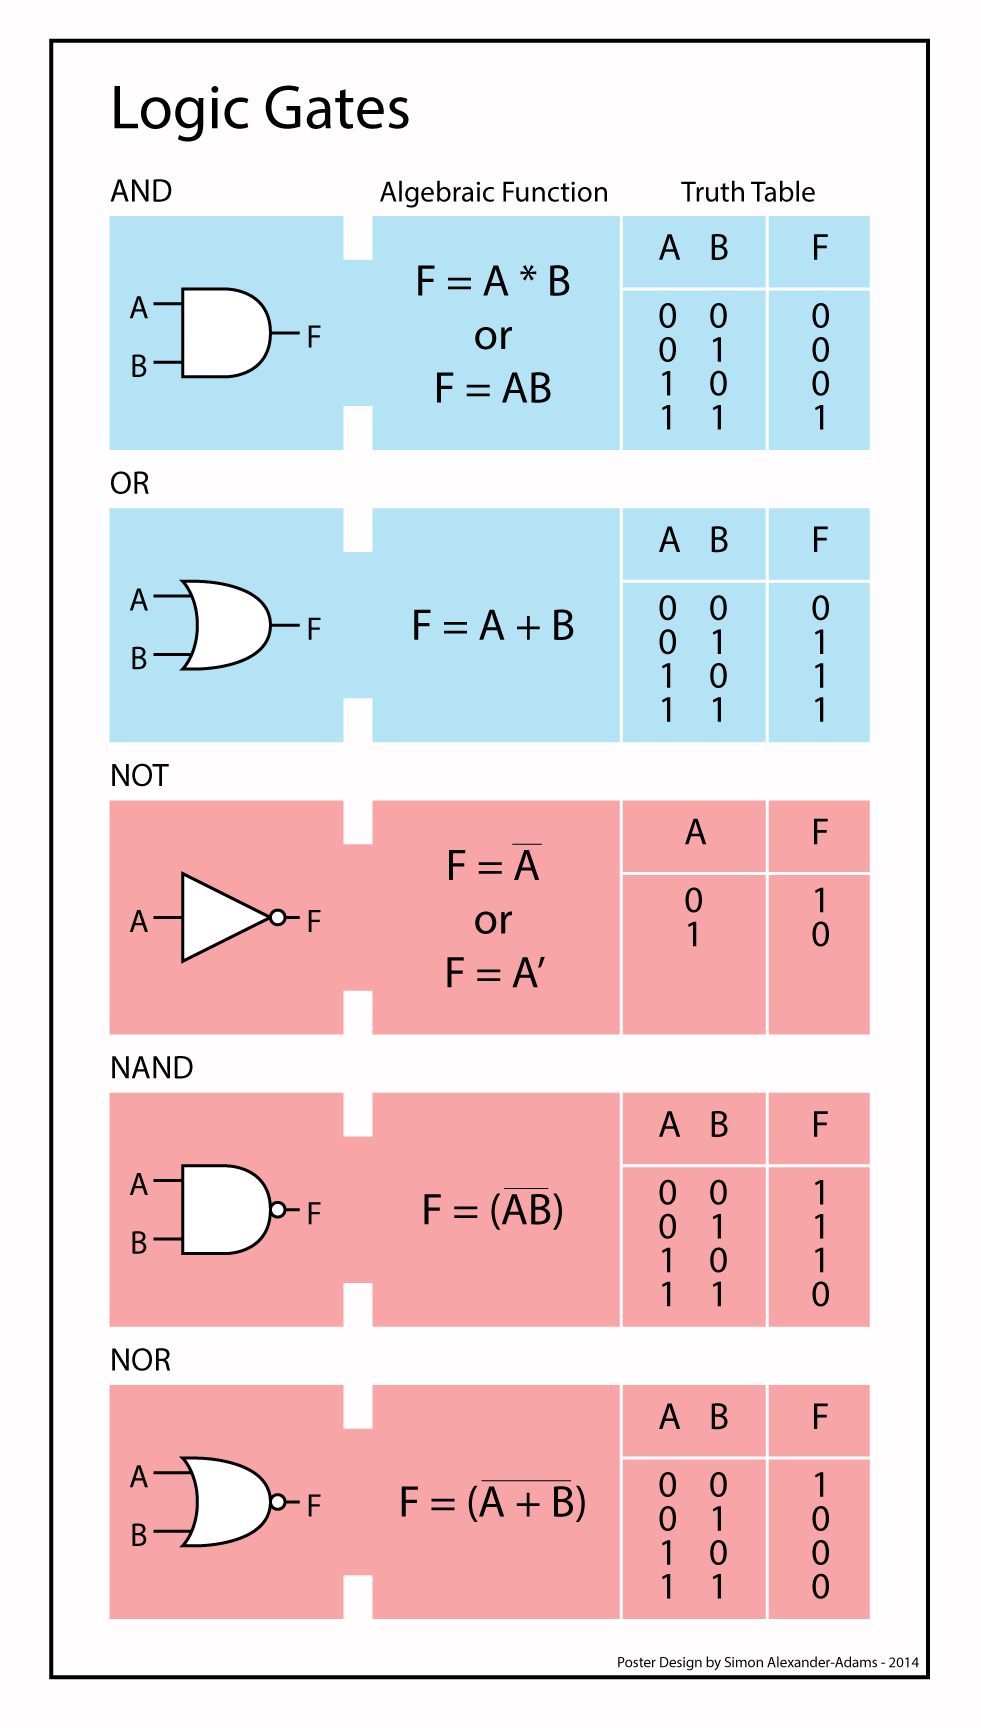 Logic-Gates.png